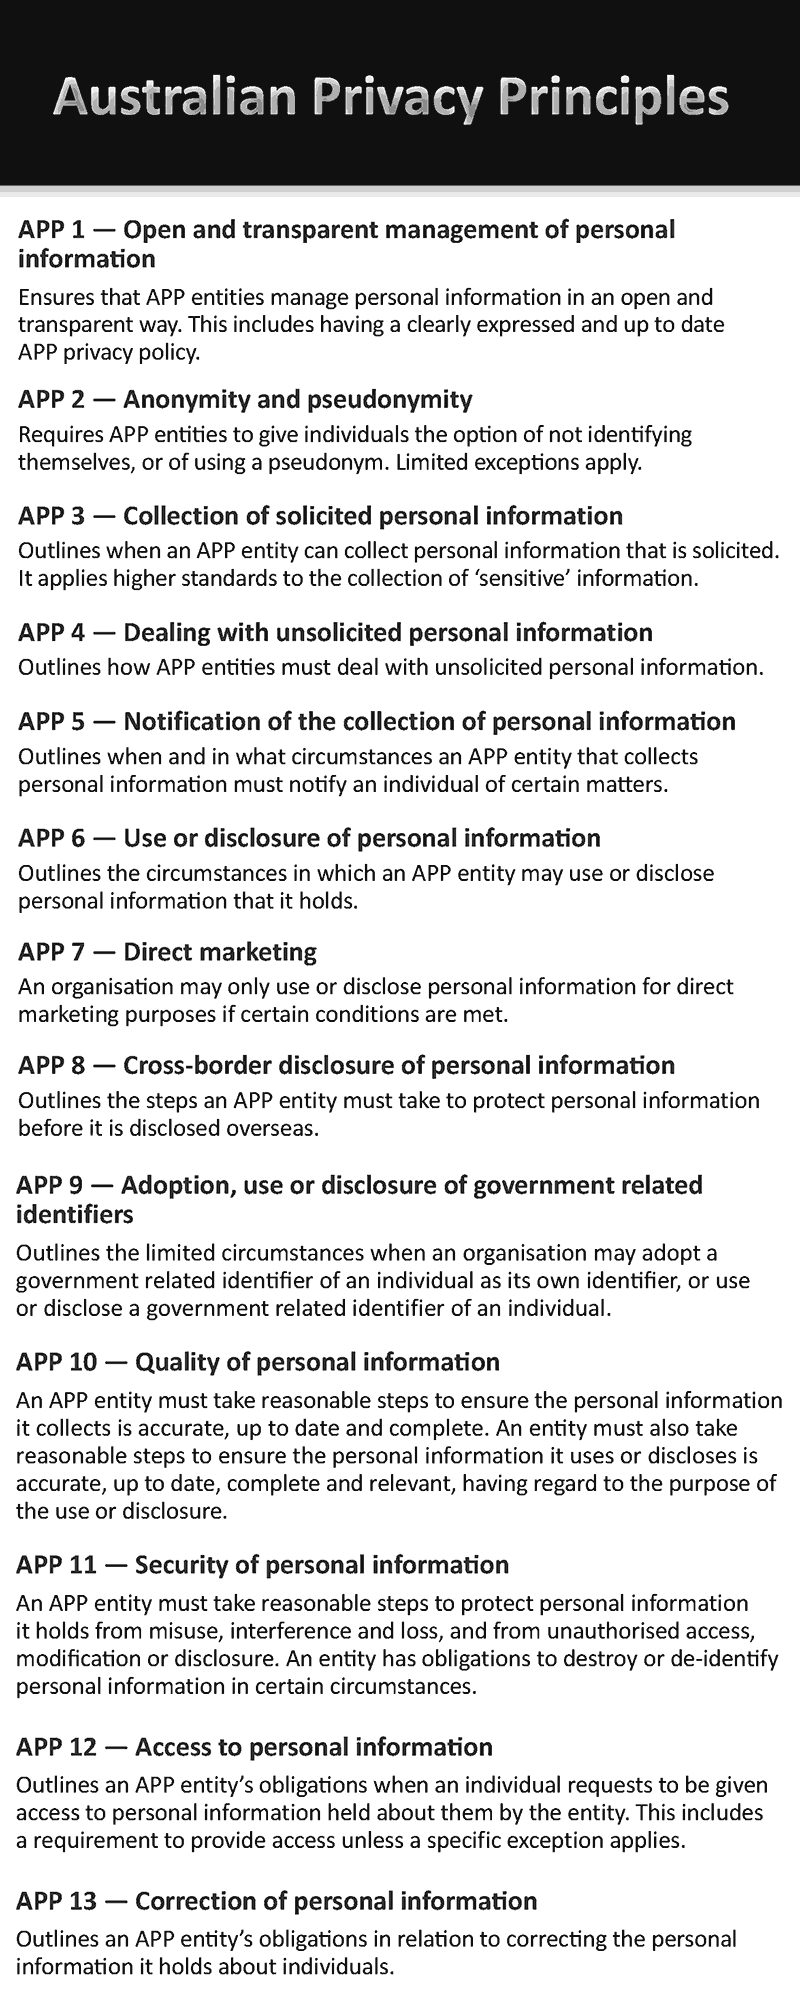 Australian Privacy Principles summary